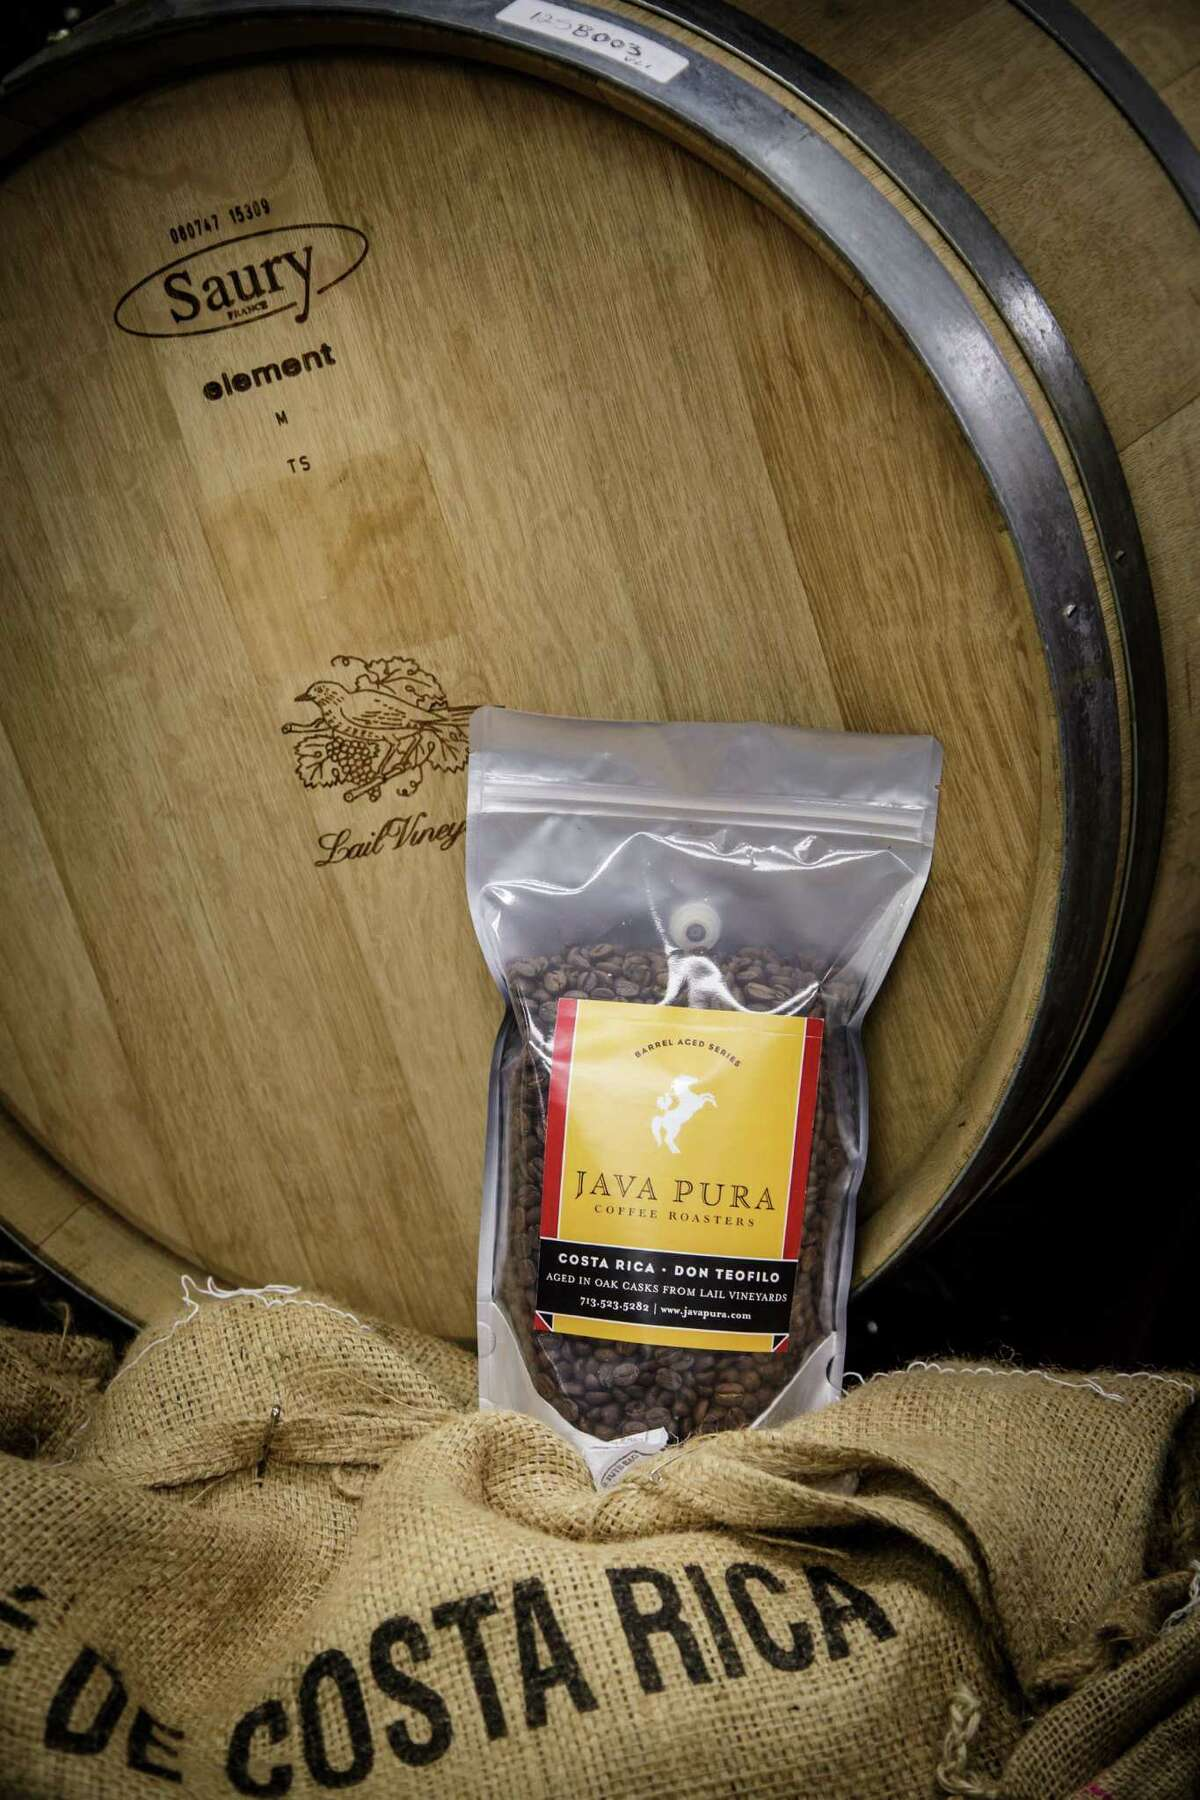 Coffee beans aged within a wine cask sit packaged at Java Pura, Monday, Oct. 7, 2013, in Houston. Java Pura has been experimenting with aging coffee beans in wine and beer casks causing the beans to pick up the nuances of wine and food before they are roasted. The oak barrels originate from Lail Vineyards of Napa Valley (both Sauvignon Blanc and Cabernet Sauvignon) and Saint Arnold brewery in Houston. ( Michael Paulsen / Houston Chronicle )